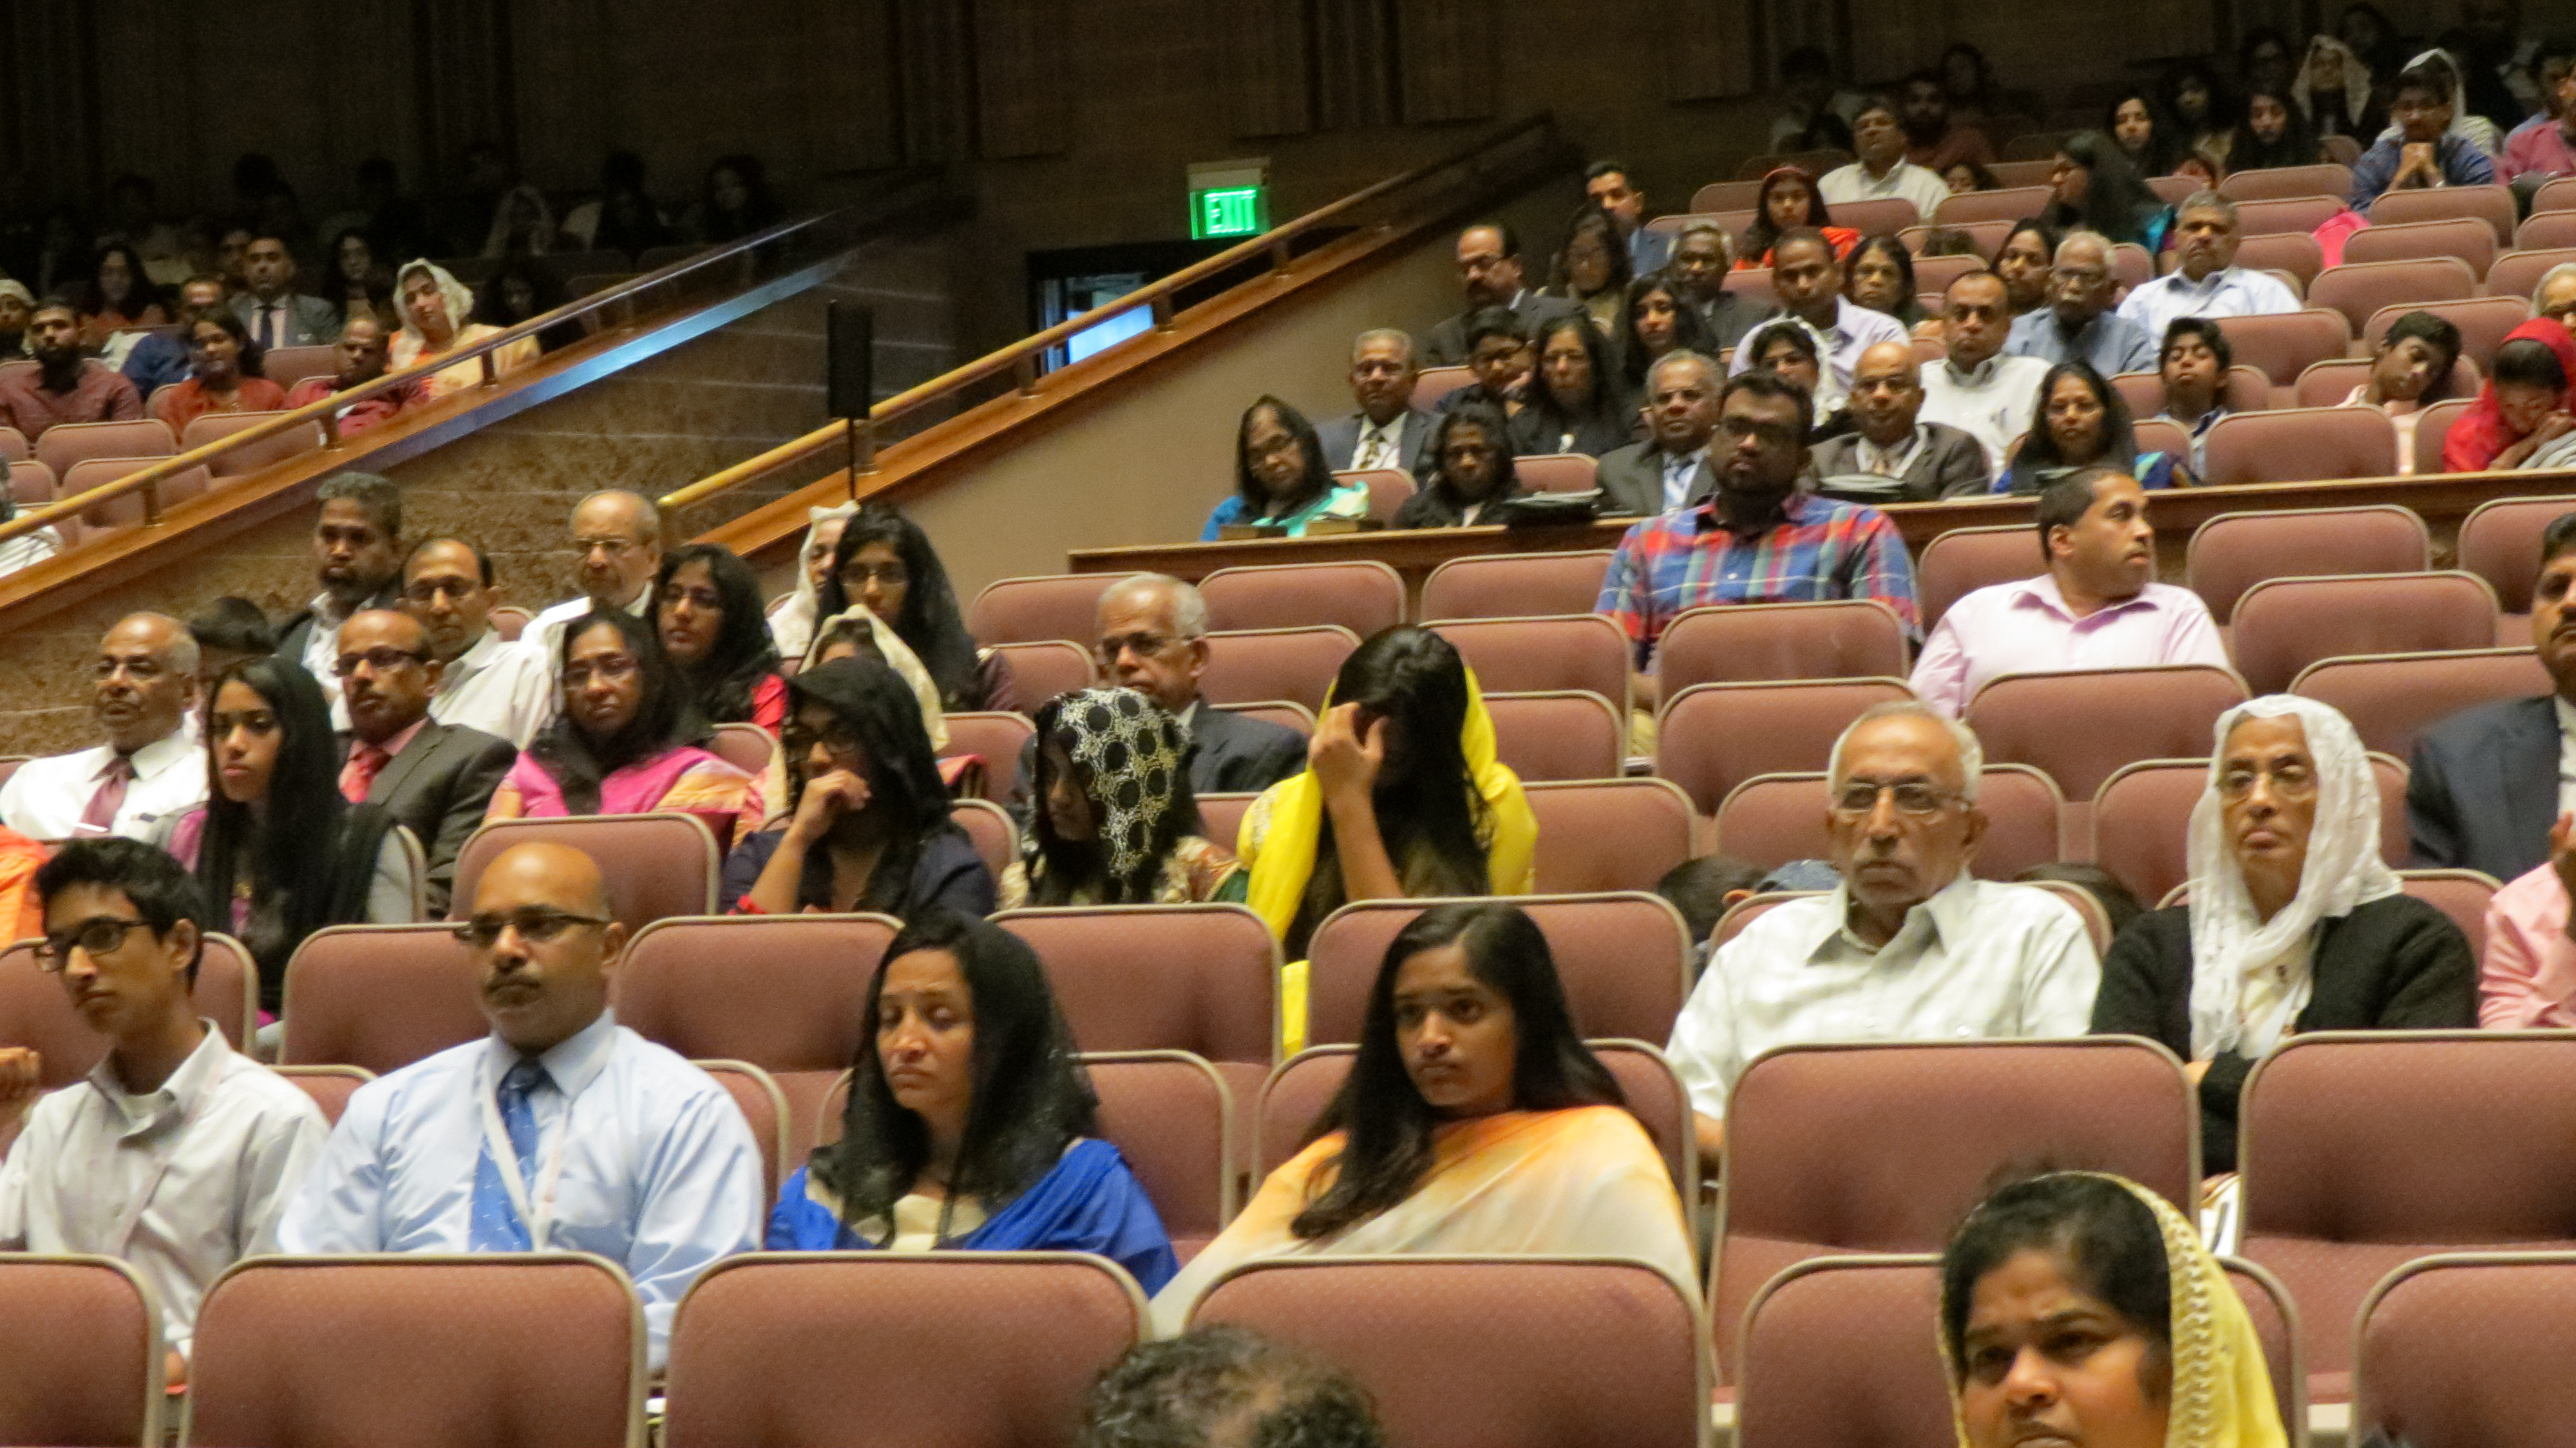 5th Day PLENARY AUDIENCE 10